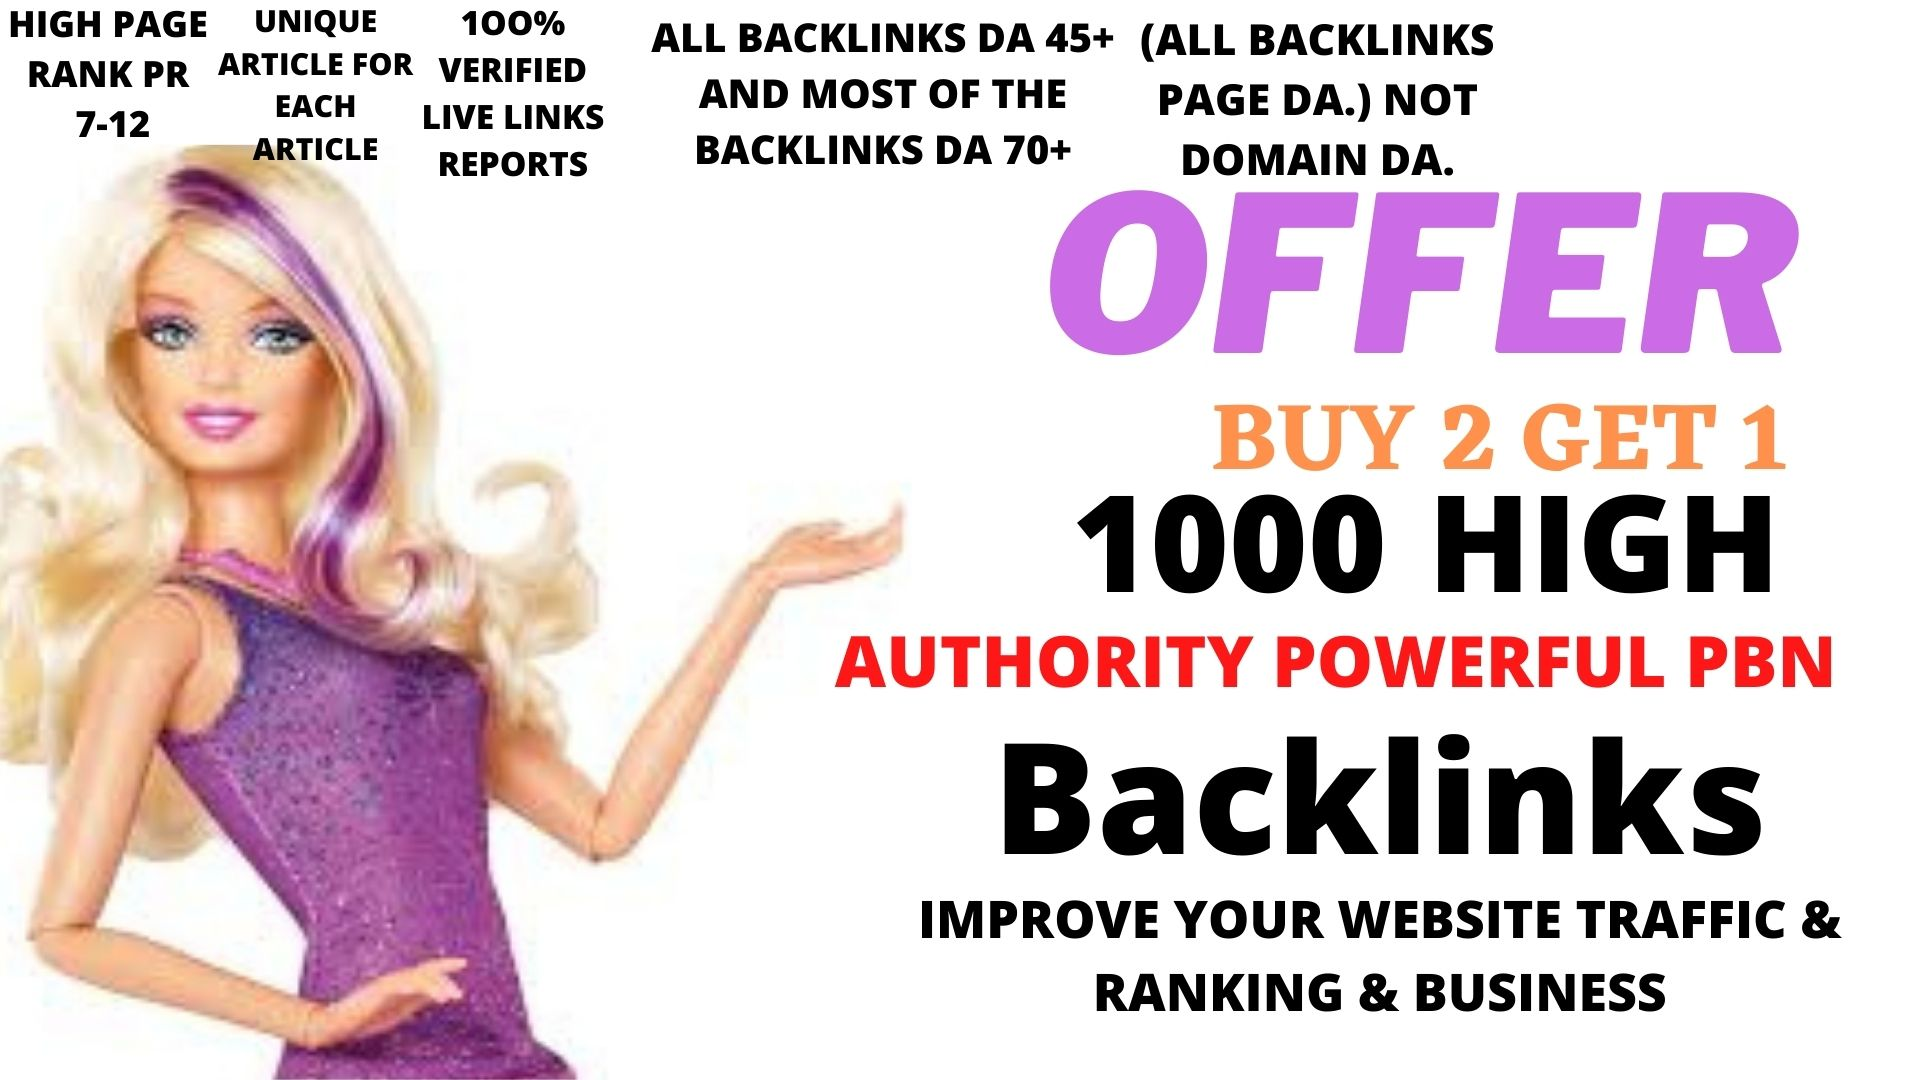 Build 1000 web 2.0 DA 45+Buy 2 get 1 Offer Dofollow backlink